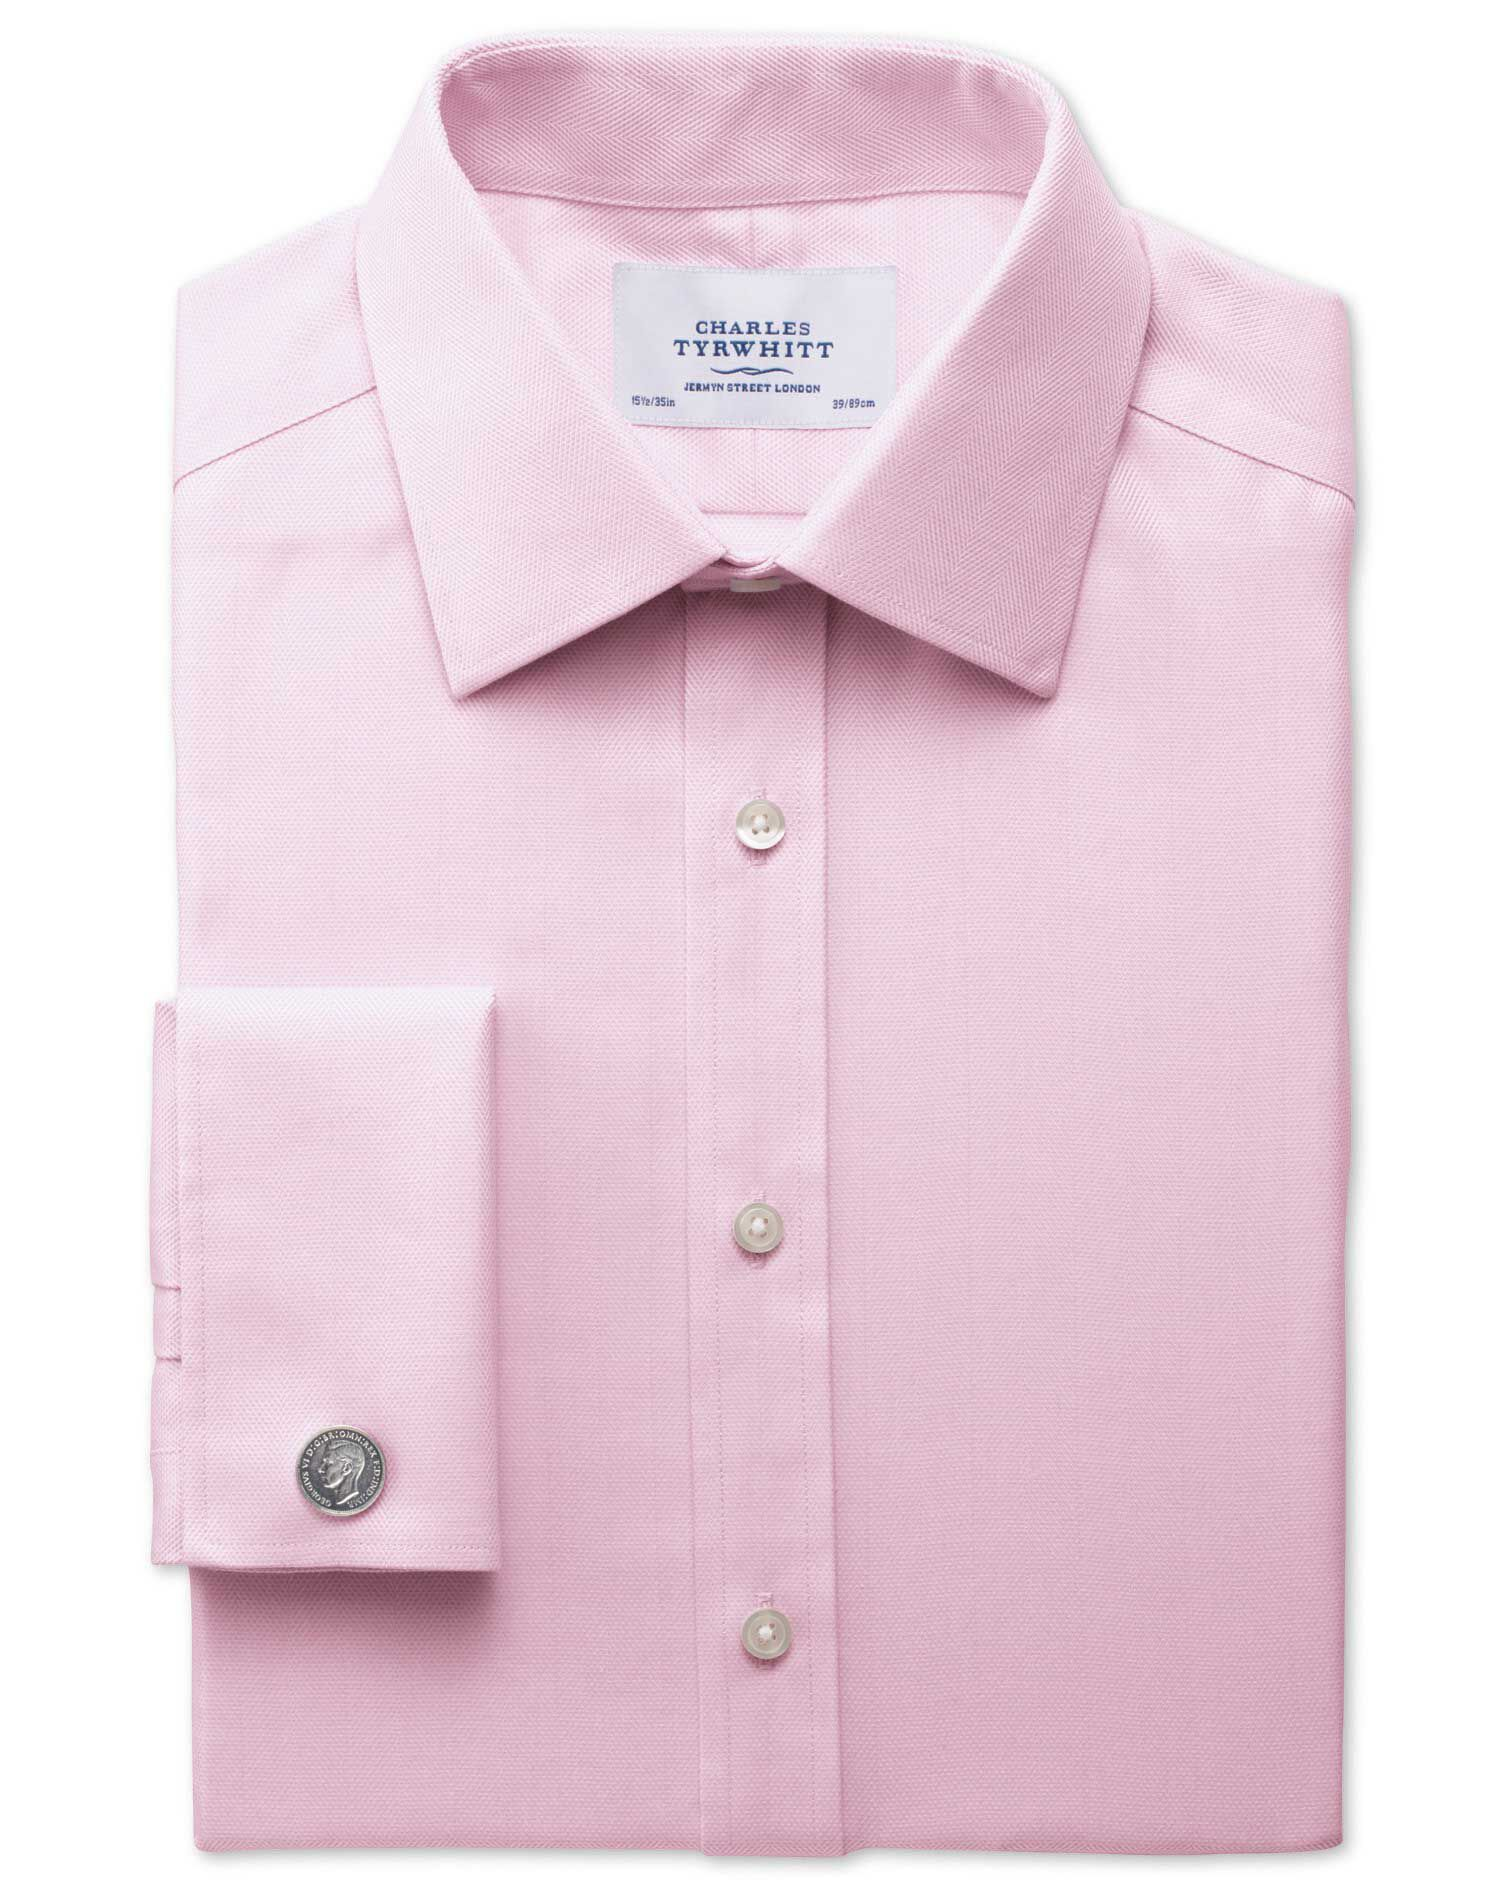 Classic Fit Non-Iron Herringbone Light Pink Cotton Formal Shirt Single Cuff Size 16/34 by Charles Ty